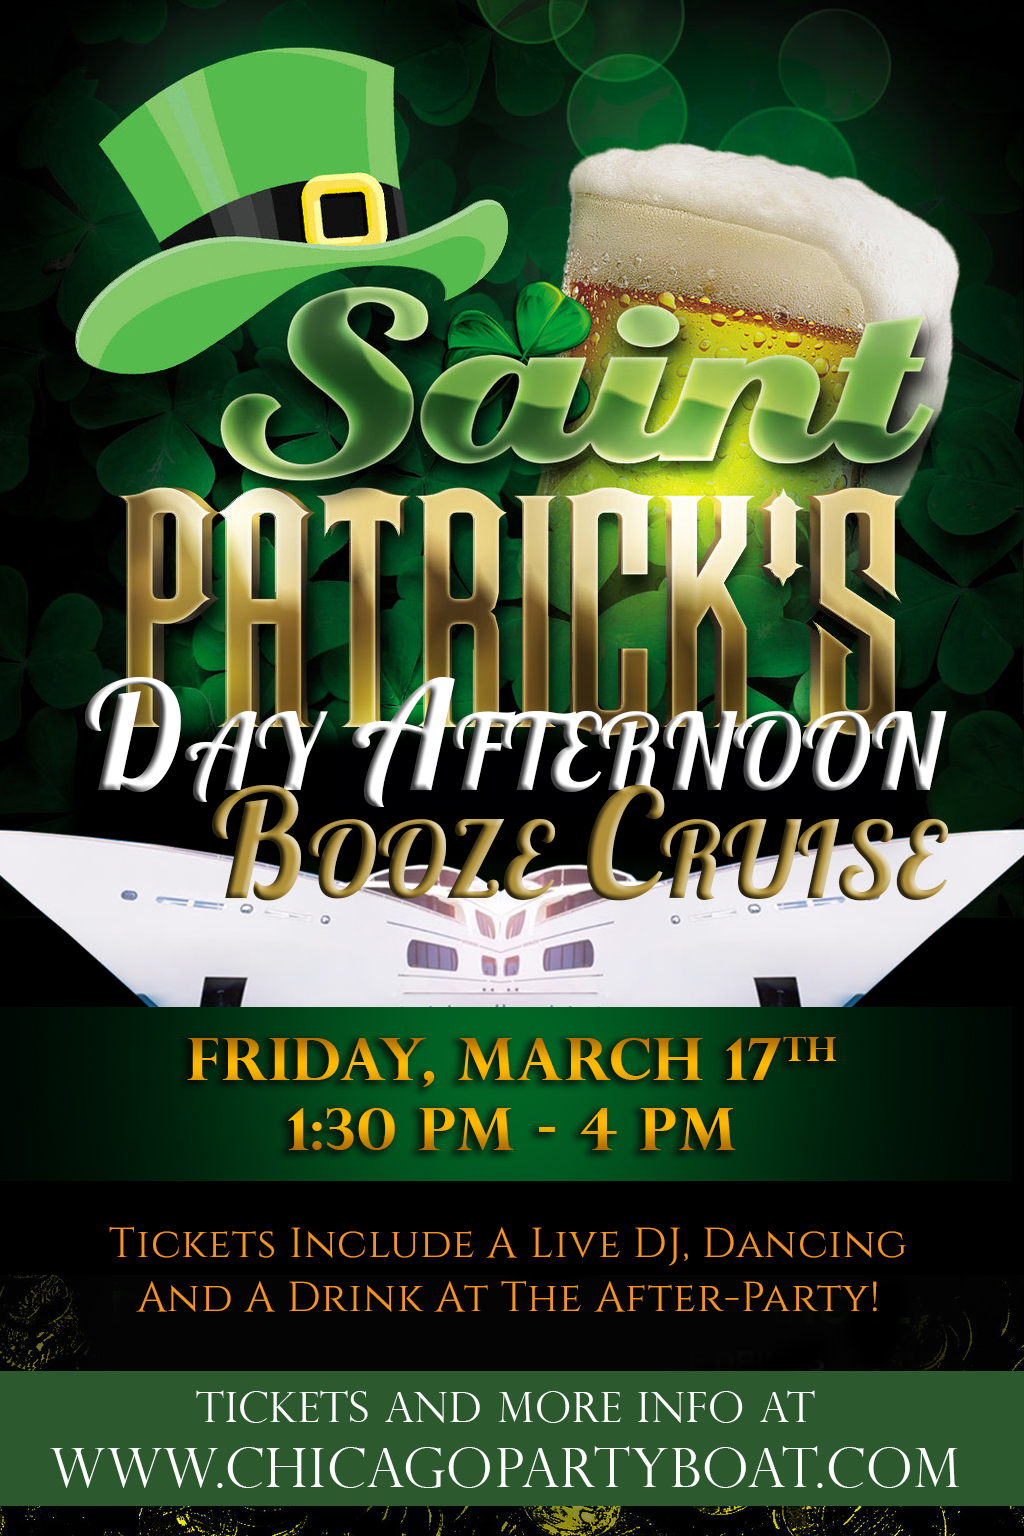 St. Patrick's Day Afternoon Booze Cruise on Lake Michigan! Tickets include a Live DJ, Dancing, and A Drink At The After-Party! Catch breathtaking views of the skyline while aboard the booze cruise!